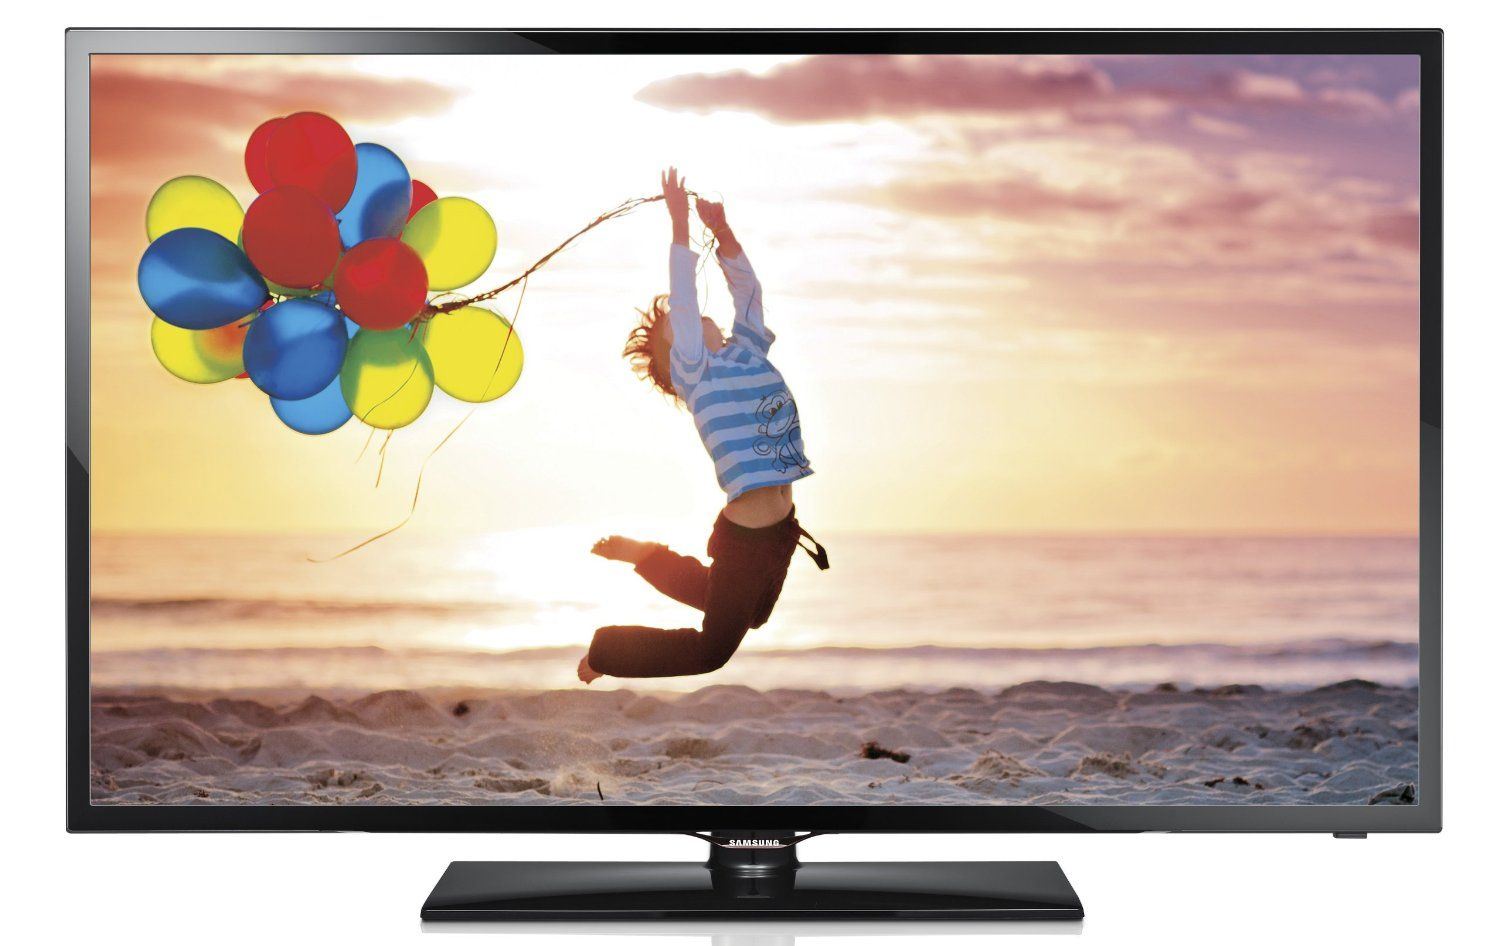 Amazon Com Samsung Un22f5000 22 Inch 1080p 60hz Slim Led Hdtv 2013 Model Electronics Led Tv Best Small Tv Samsung Tvs